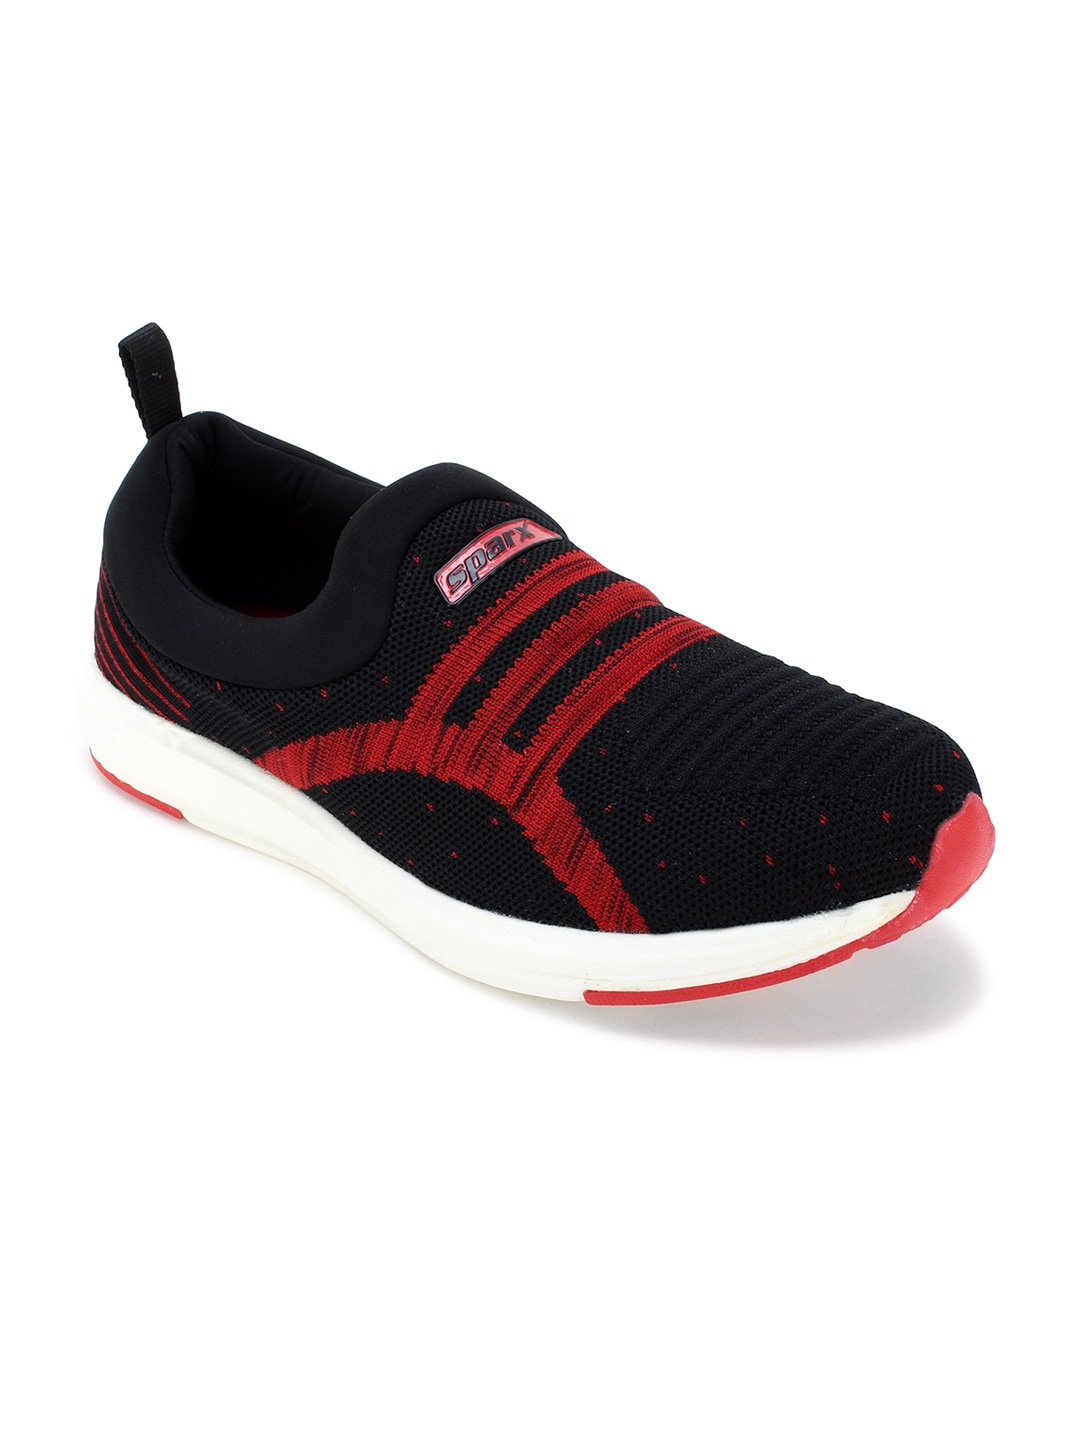 c2bf9ae1cefe Sparx Shoes - Buy Sparx Shoes for Men Online in India